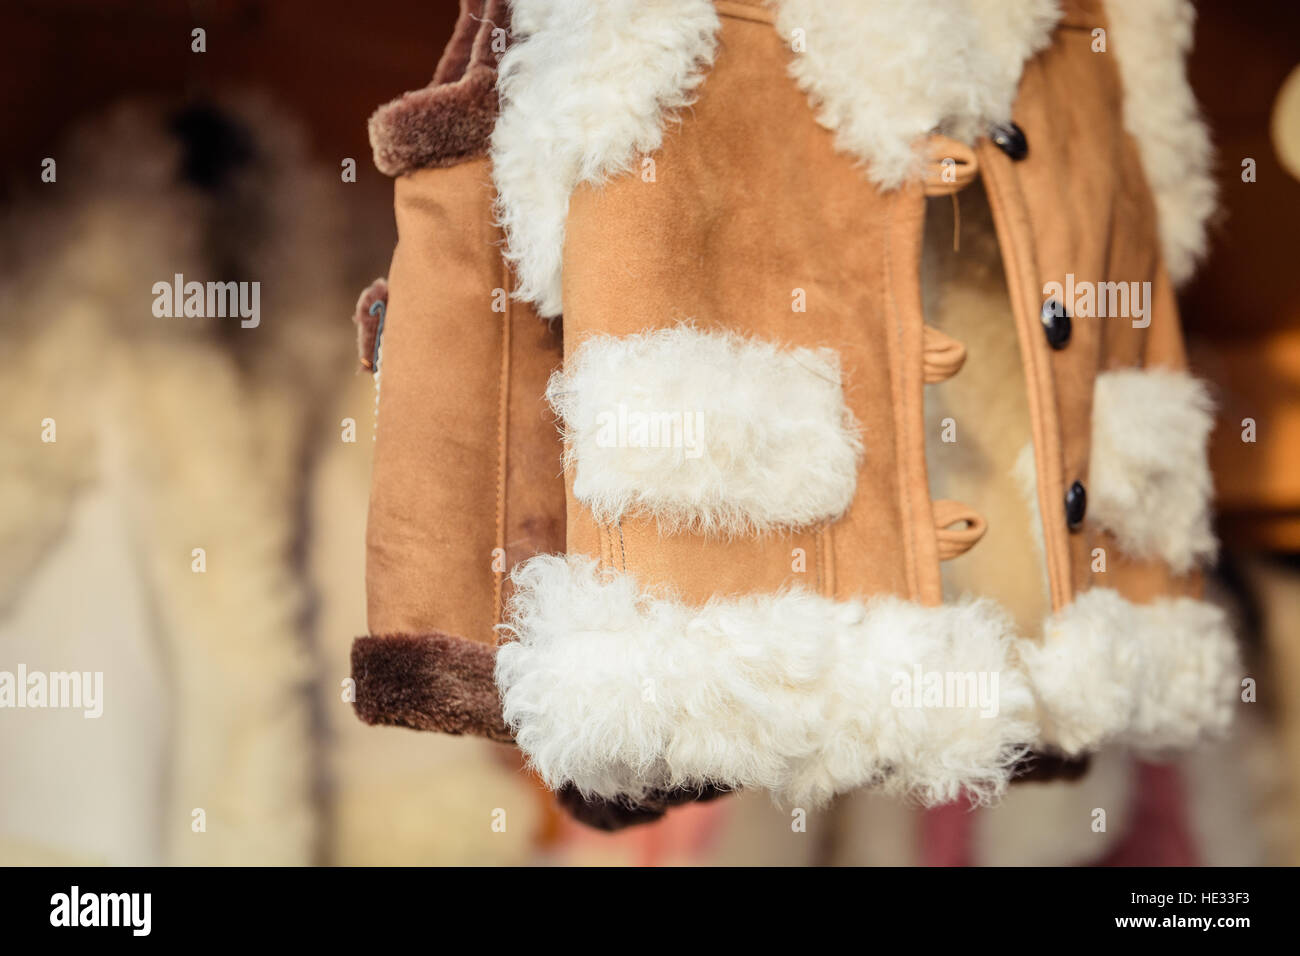 Traditional sheepskin and wool clothing. Vest made by hand from genuine leather and fleece. - Stock Image